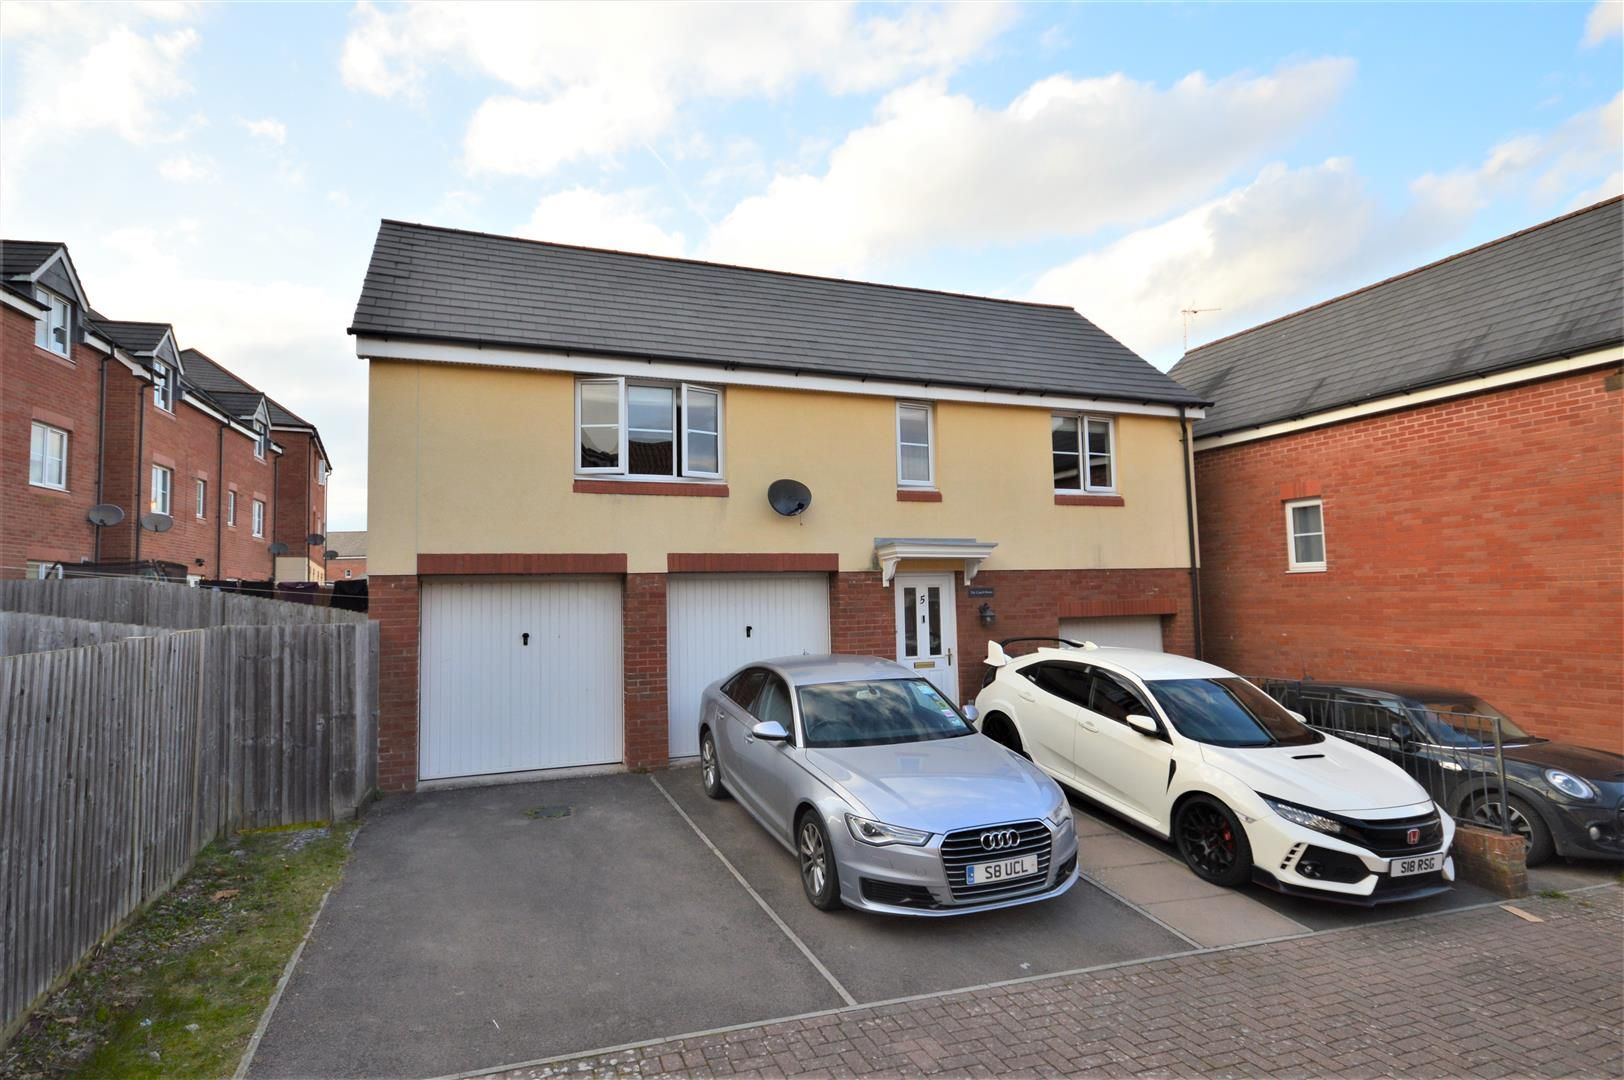 2 bed coach house for sale, HR2